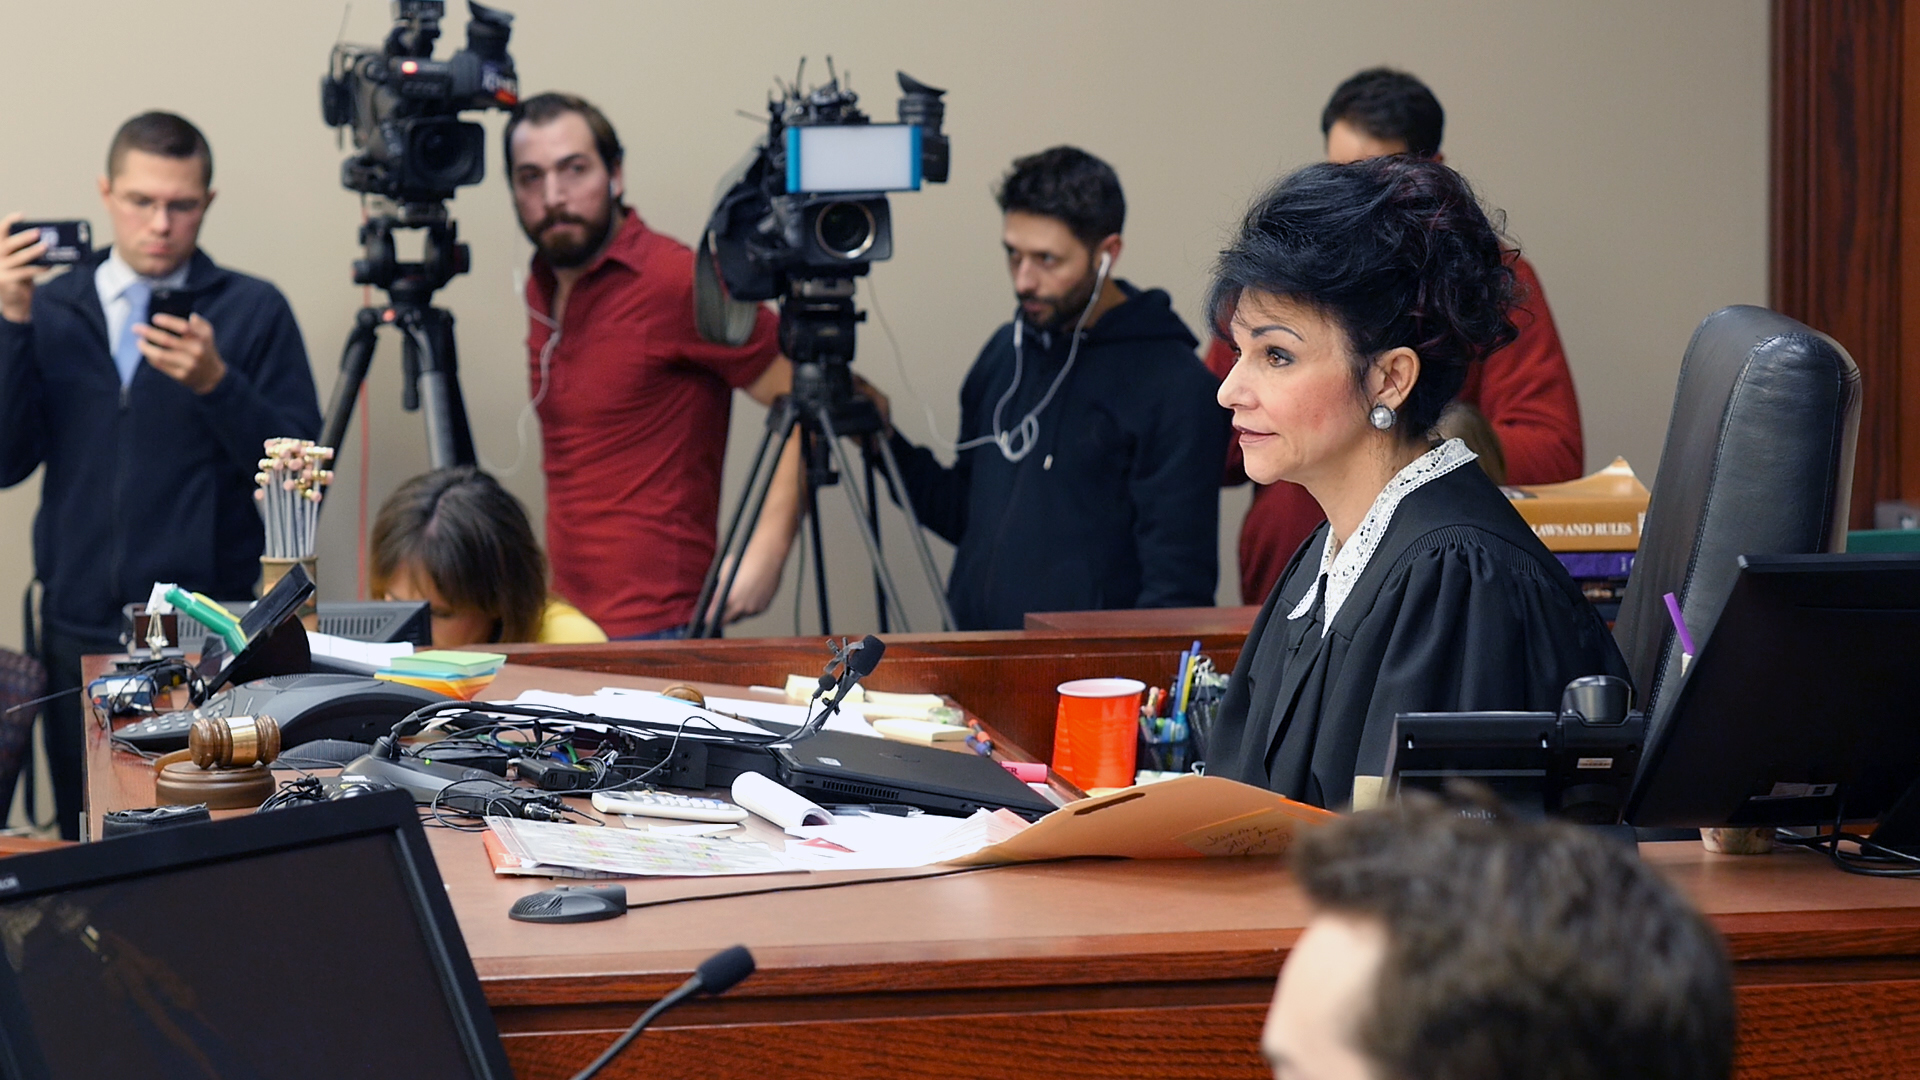 Judge Rosemarie Aqualina during the Michigan trial of Dr. Larry Nassar.